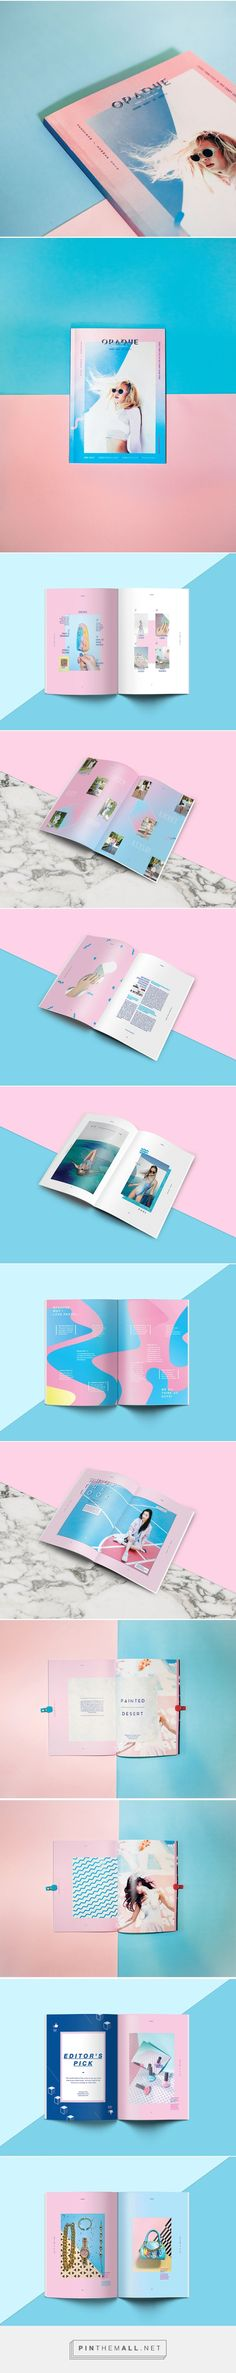 Magazine design: OPAQUE by Widya Widya